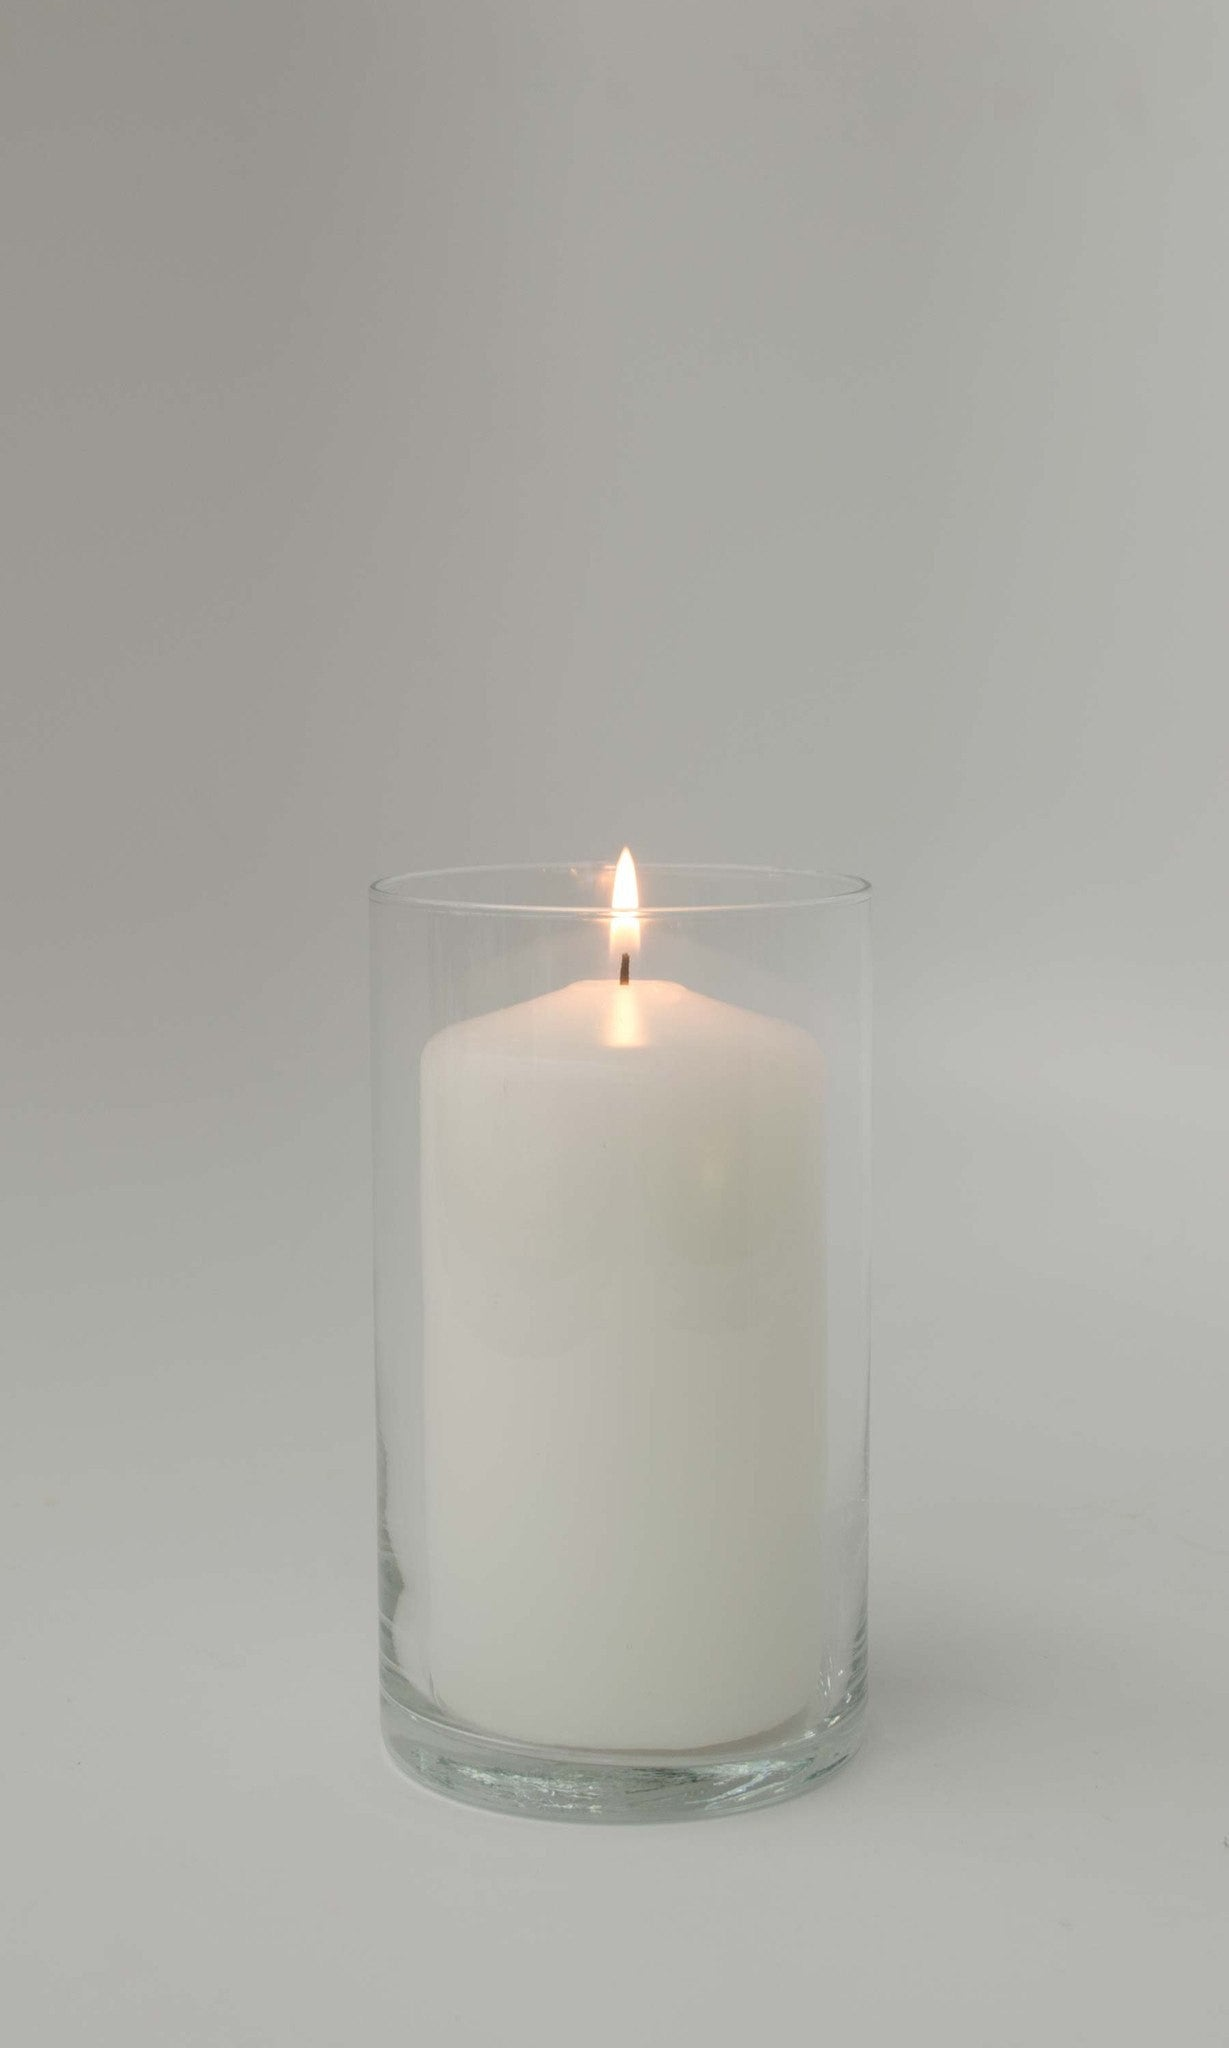 3x6 Unscented White Pillar Candle - Candlemart.com - 3